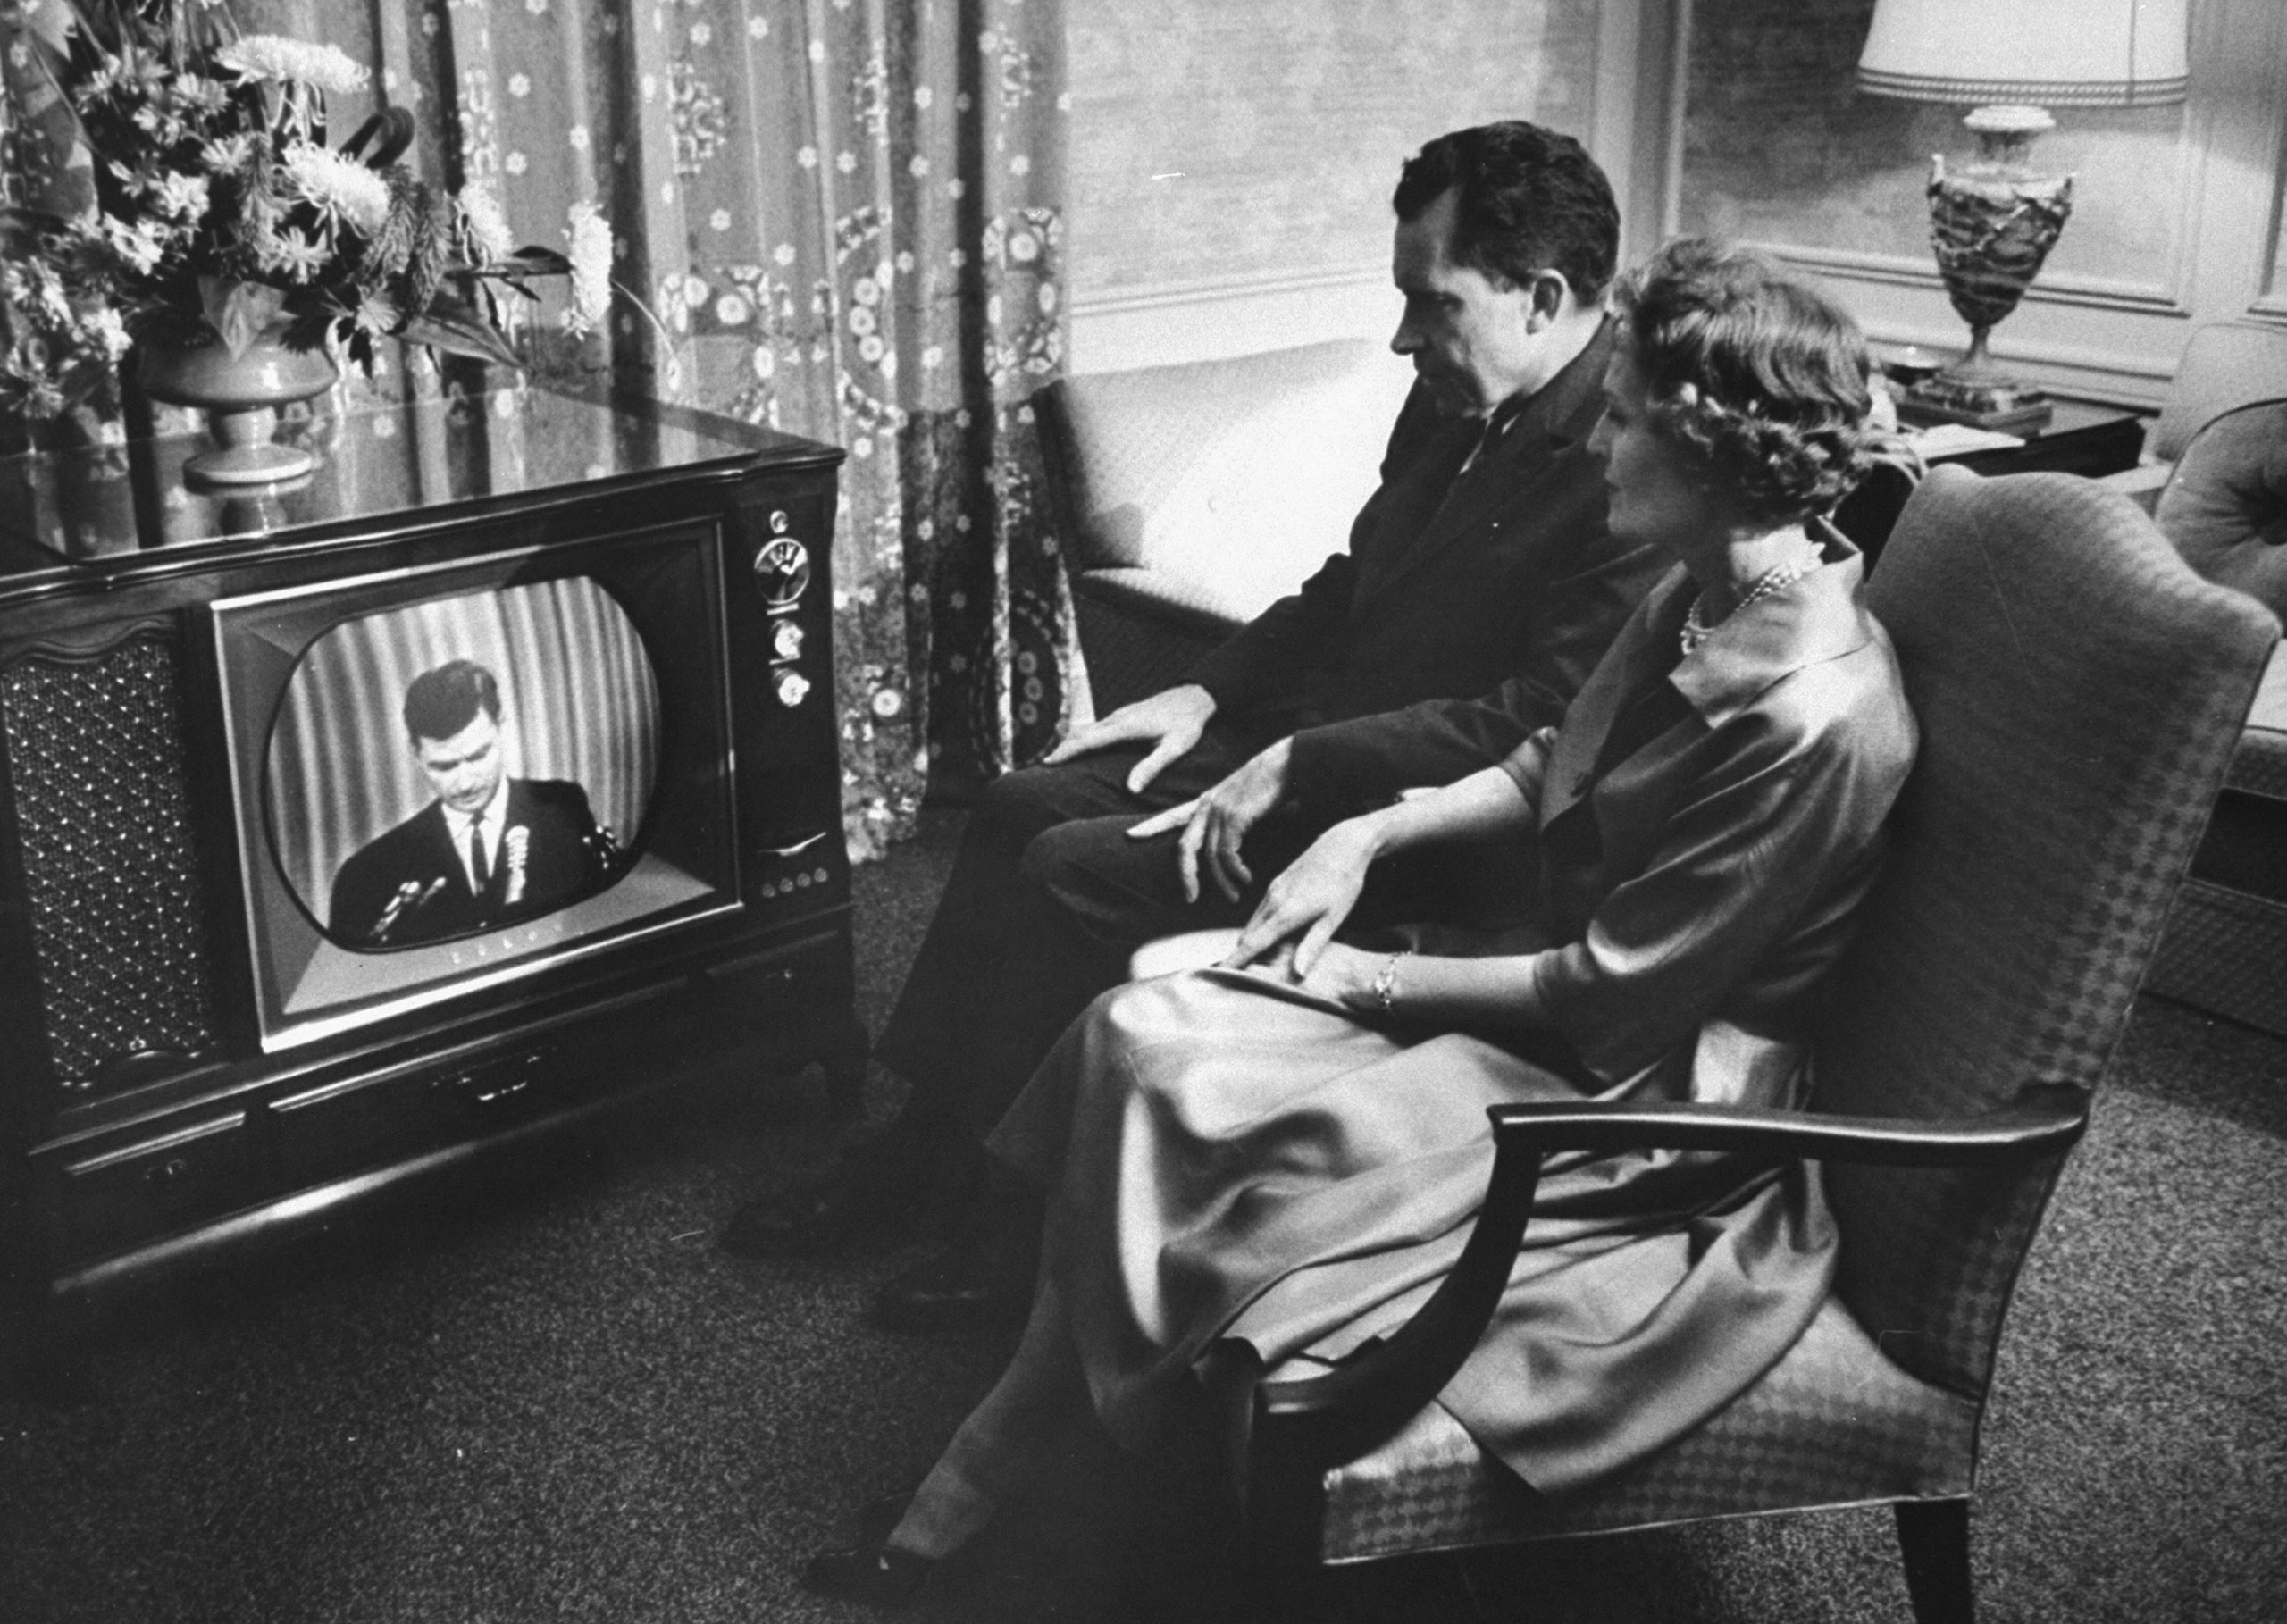 Vice President Richard Nixon and his wife, Pat, watch the 1960 GOP convention in Chicago from their hotel suite.